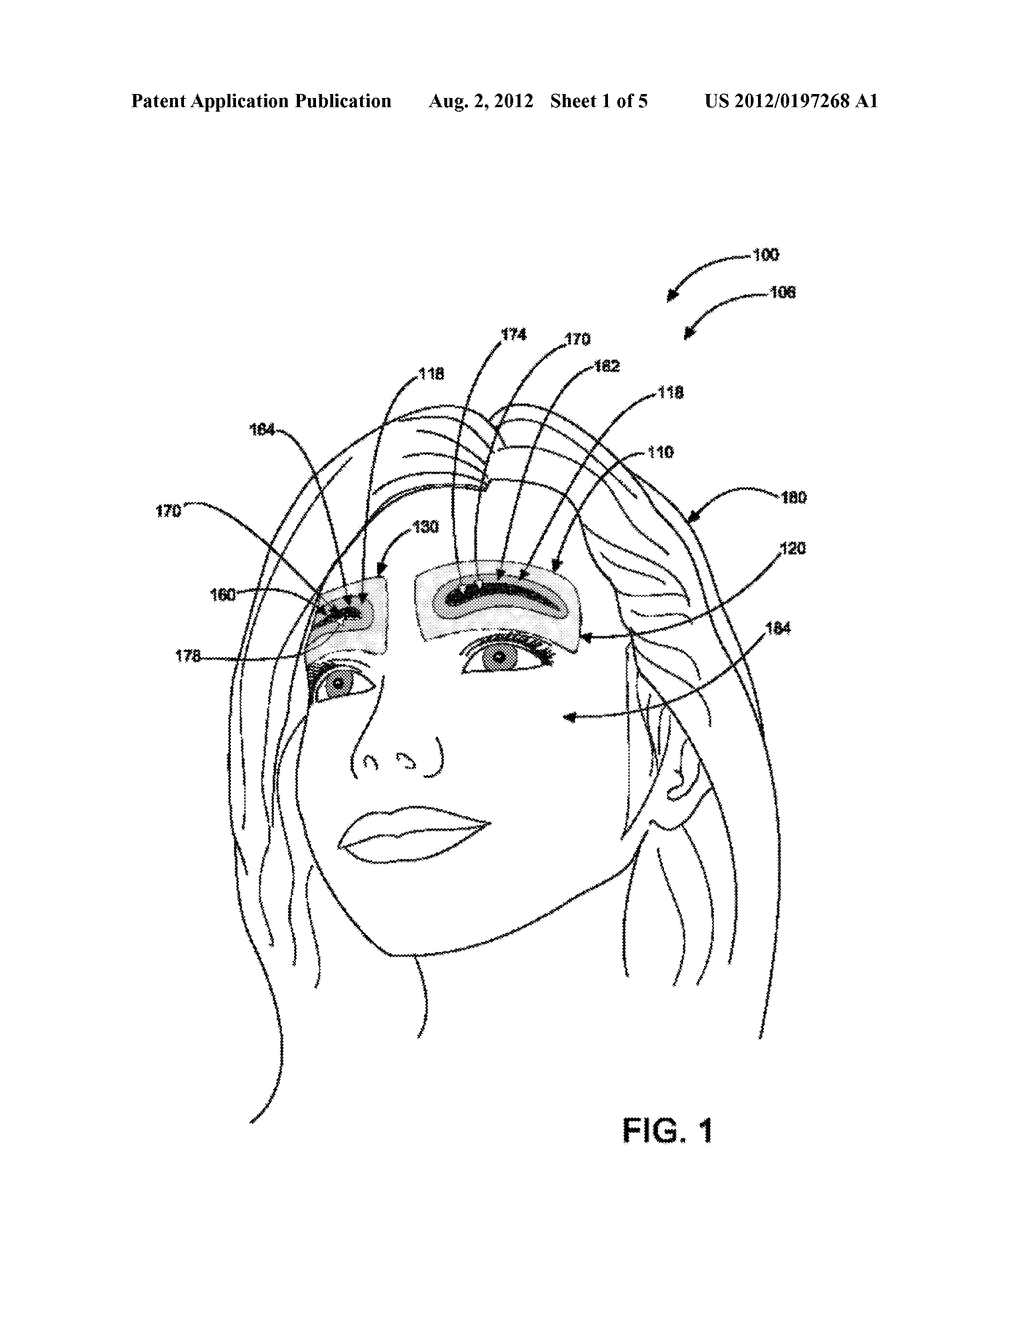 Self Eyebrow Waxing And Shaping System Diagram Schematic 1996 Kdx 200 Wiring Image 02